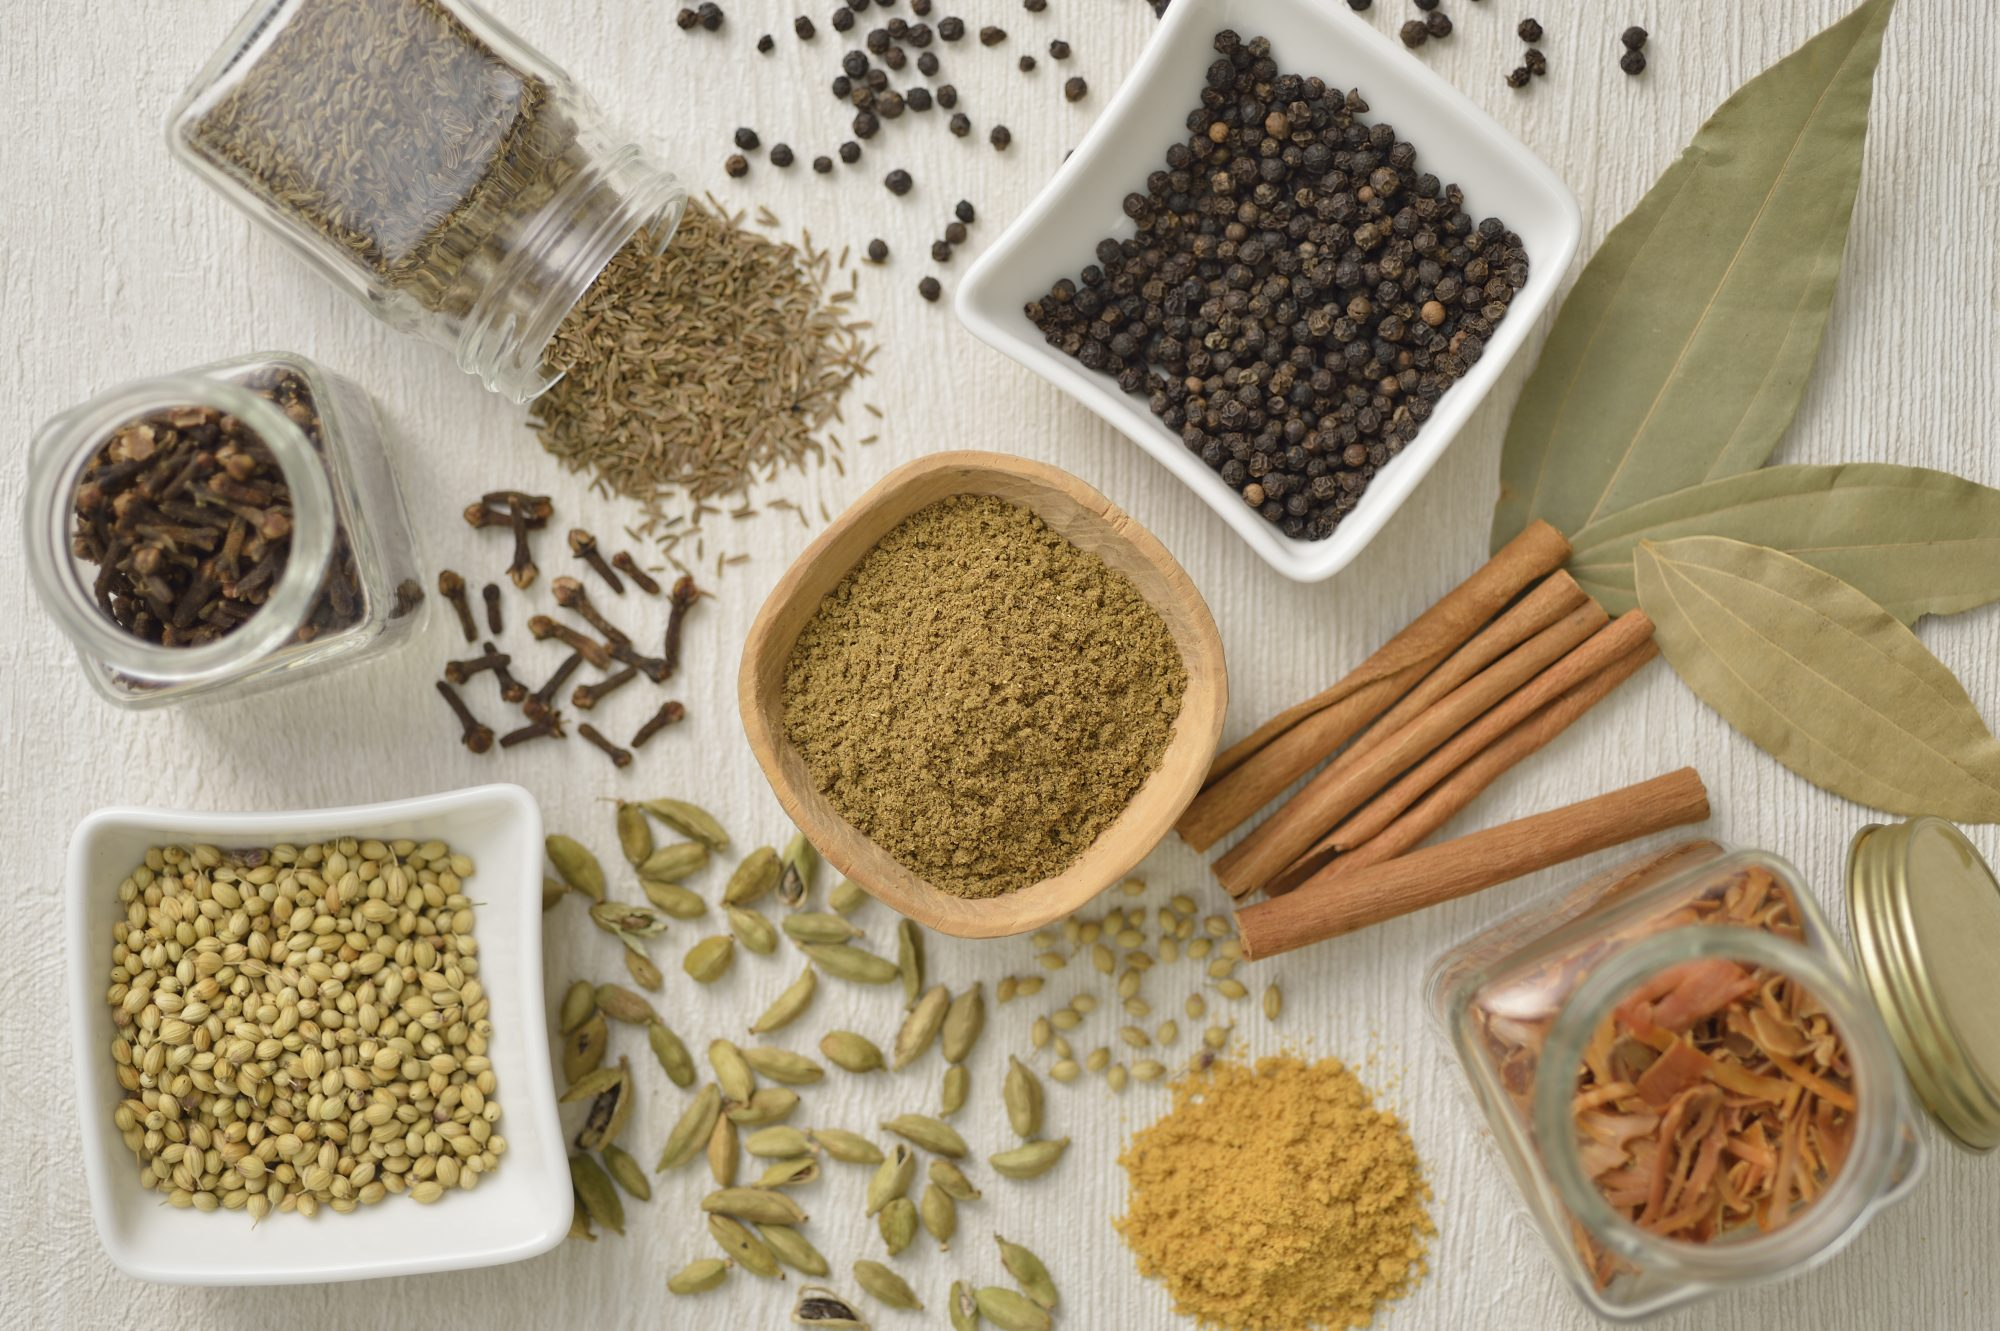 Garam masala ingredients Getty 5/27/20